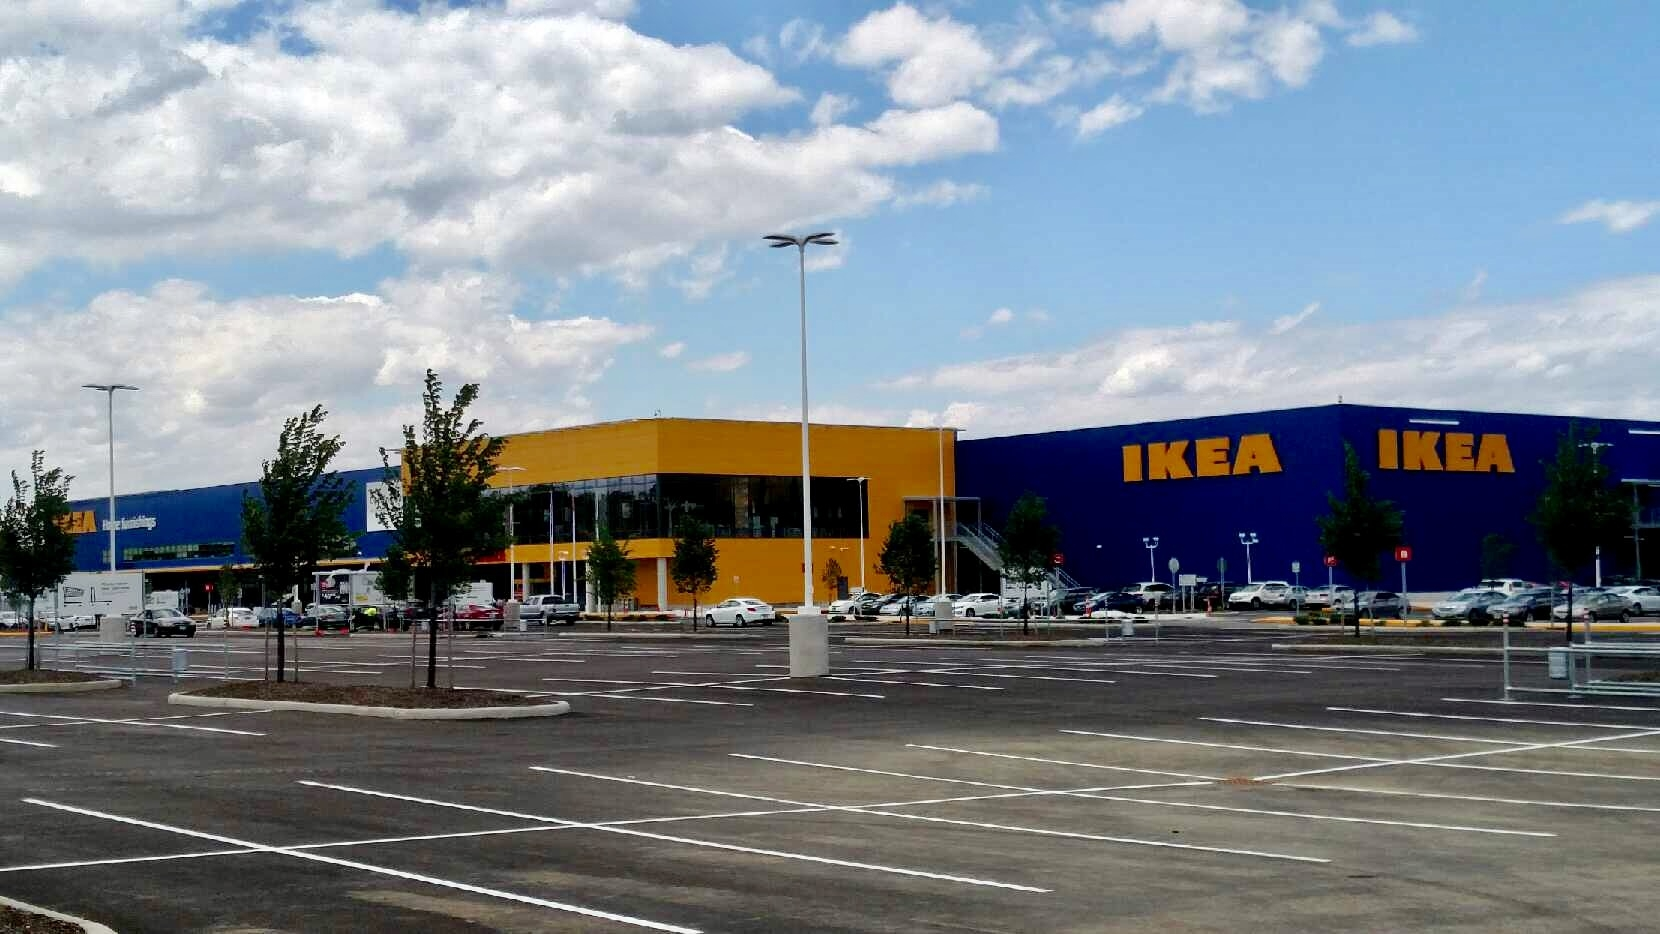 ikea grand opening june 7th eat play cbus